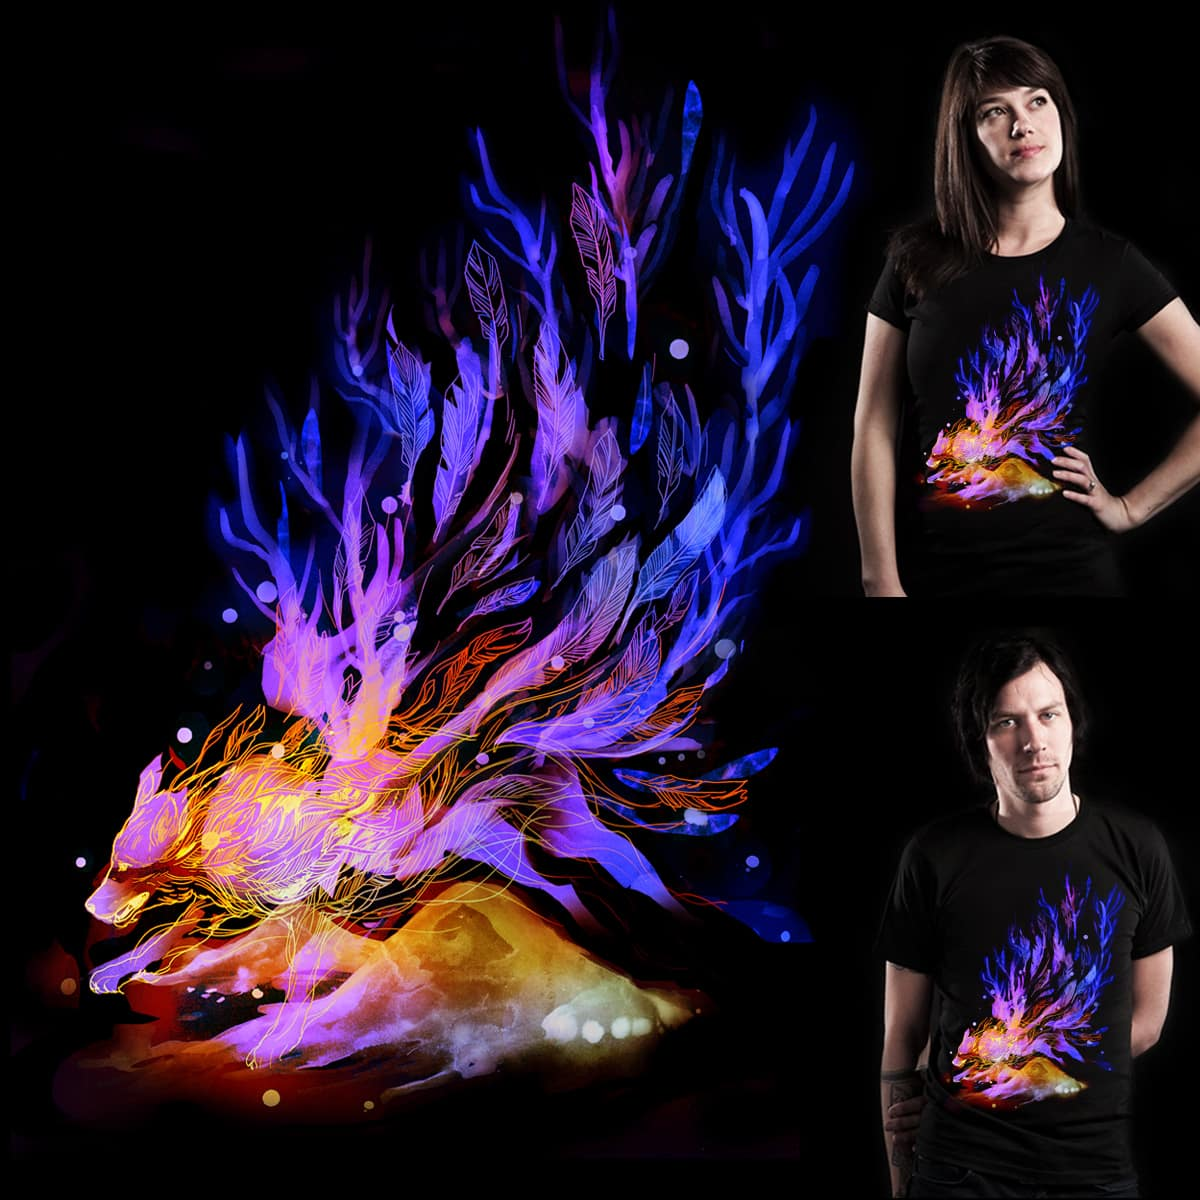 Flames by yeohgh on Threadless